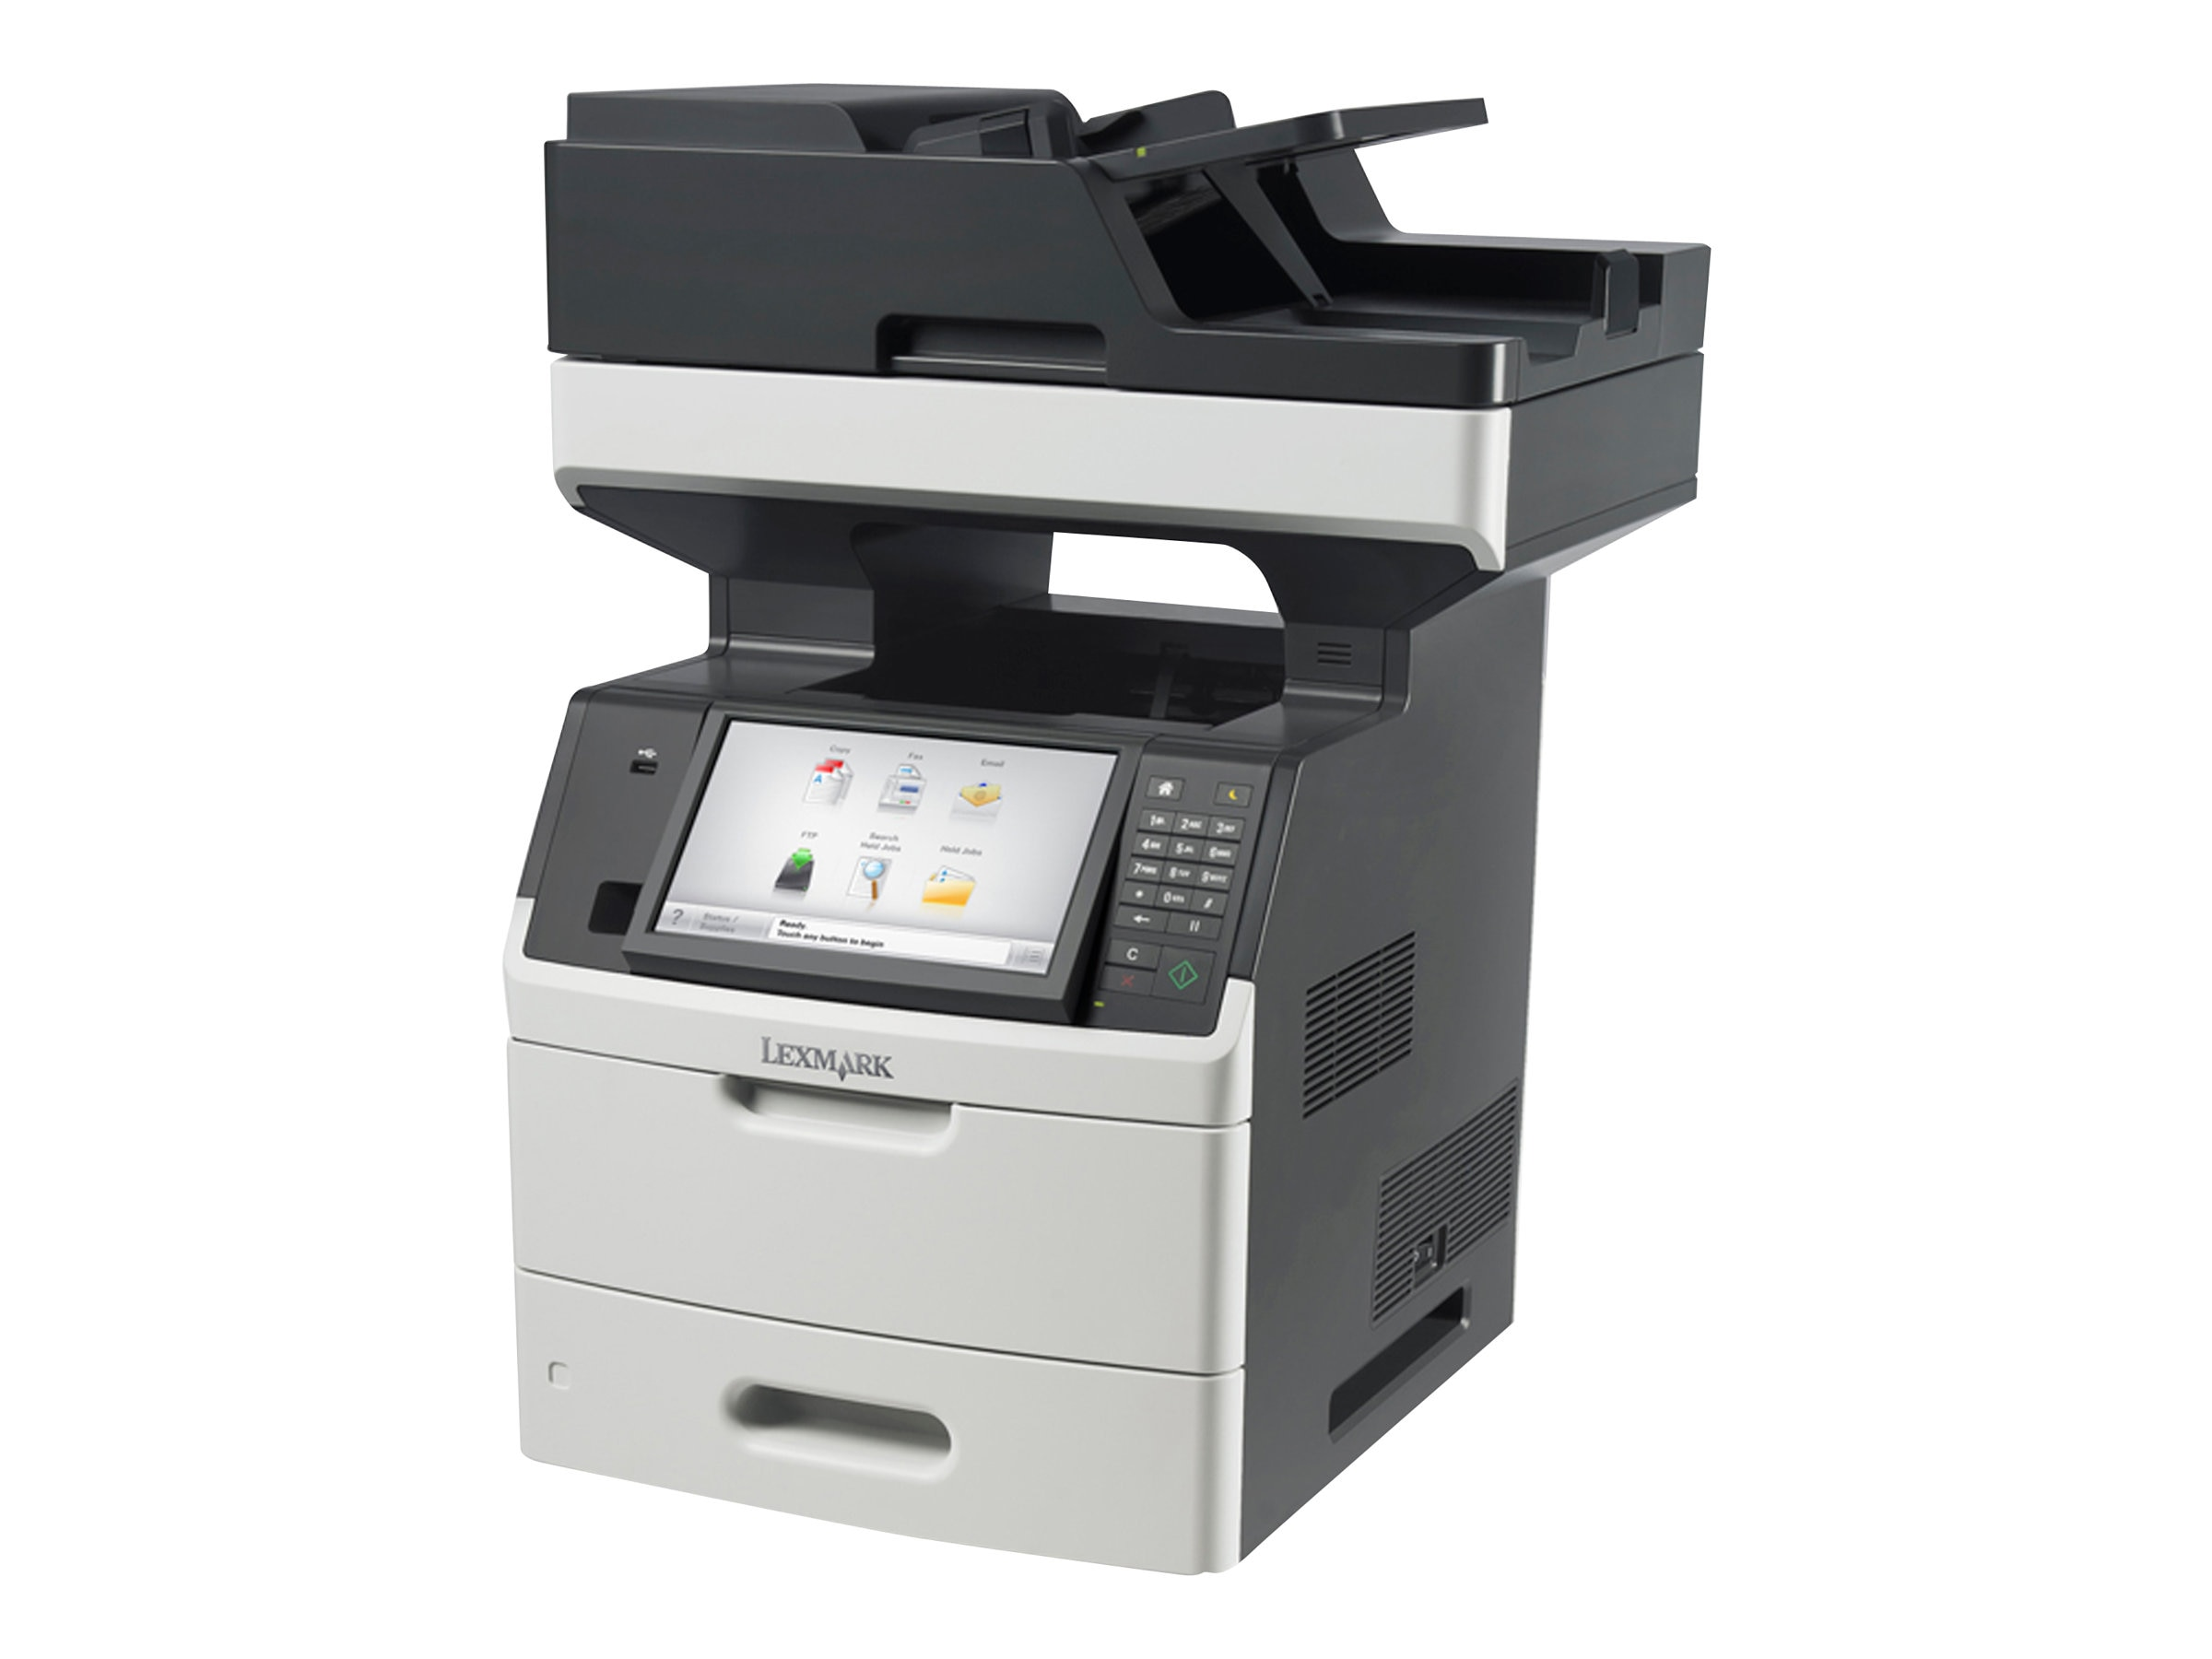 Lexmark MX711dhe Monochrome Laser Multifunction Printer, 24T7320, 14908503, MultiFunction - Laser (monochrome)